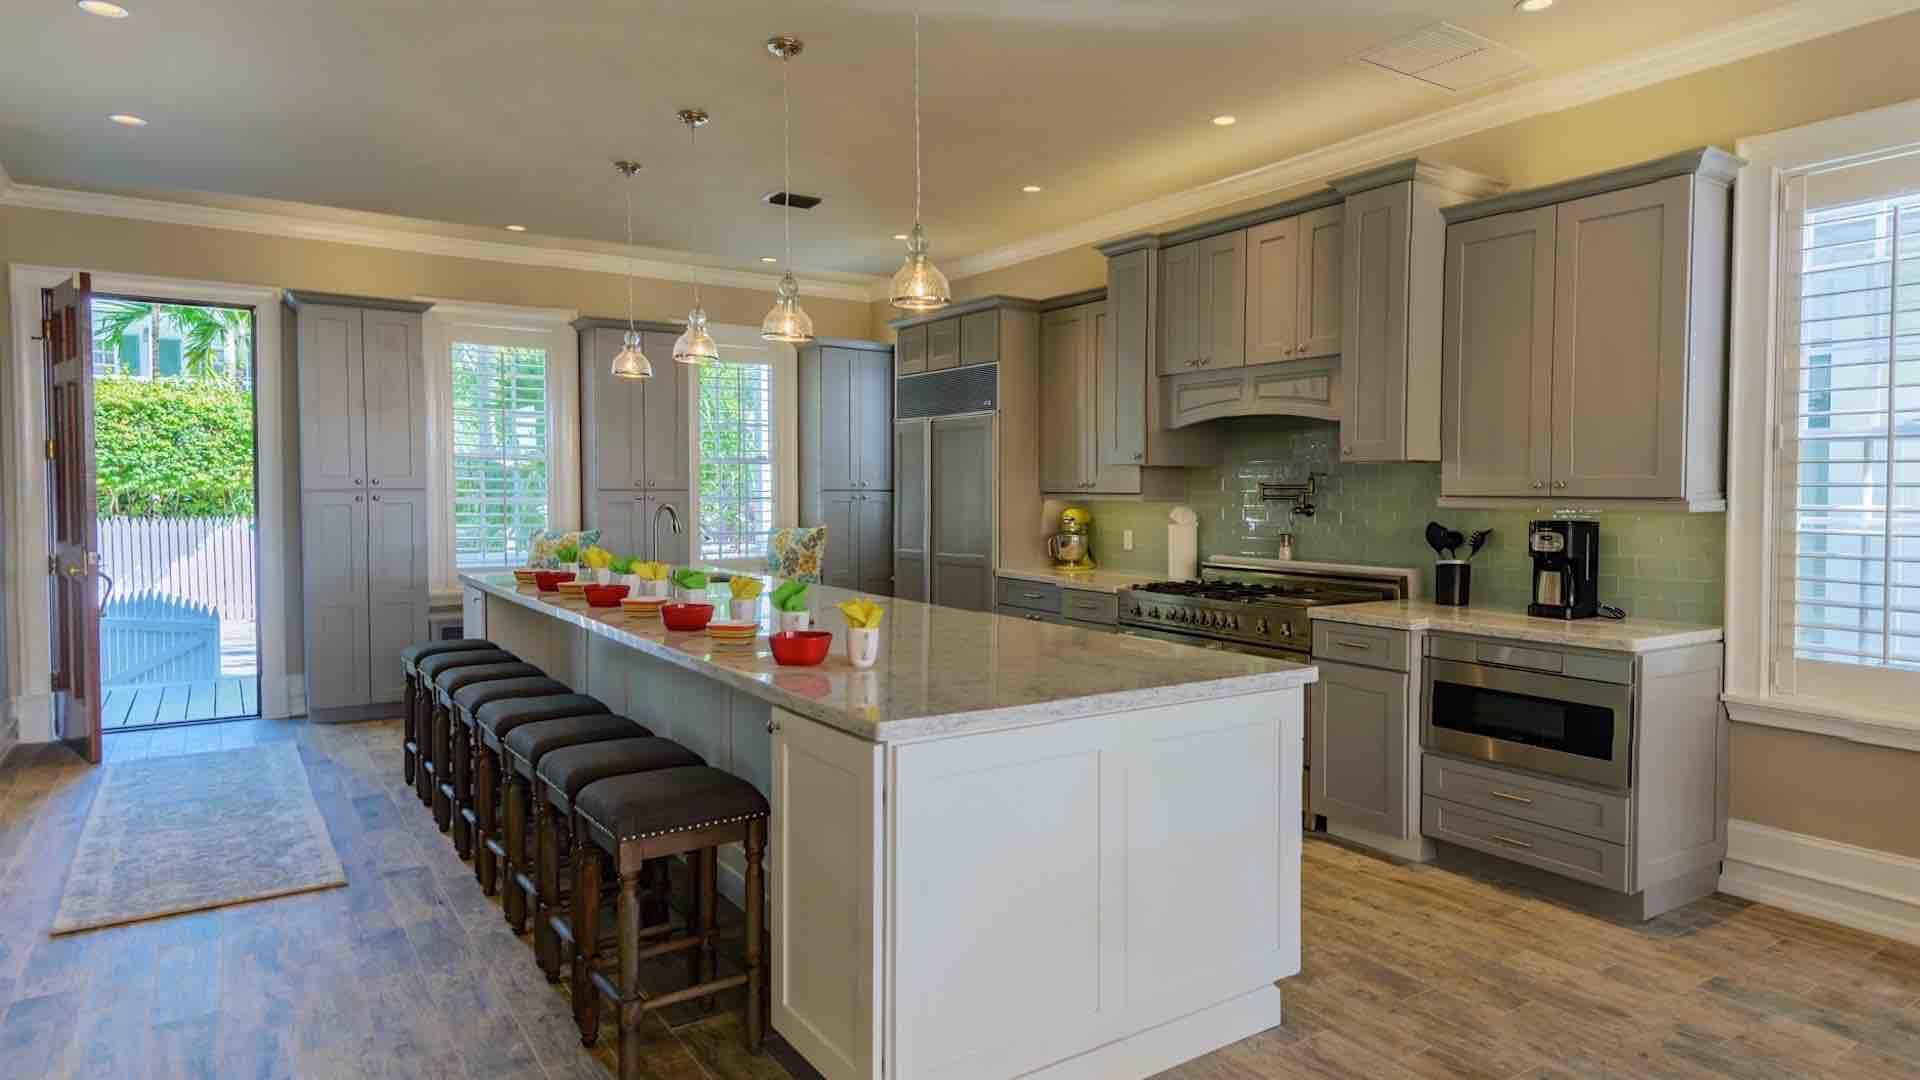 The gourmet kitchen is suitable to prepare a banquet meal. The island seats 8...